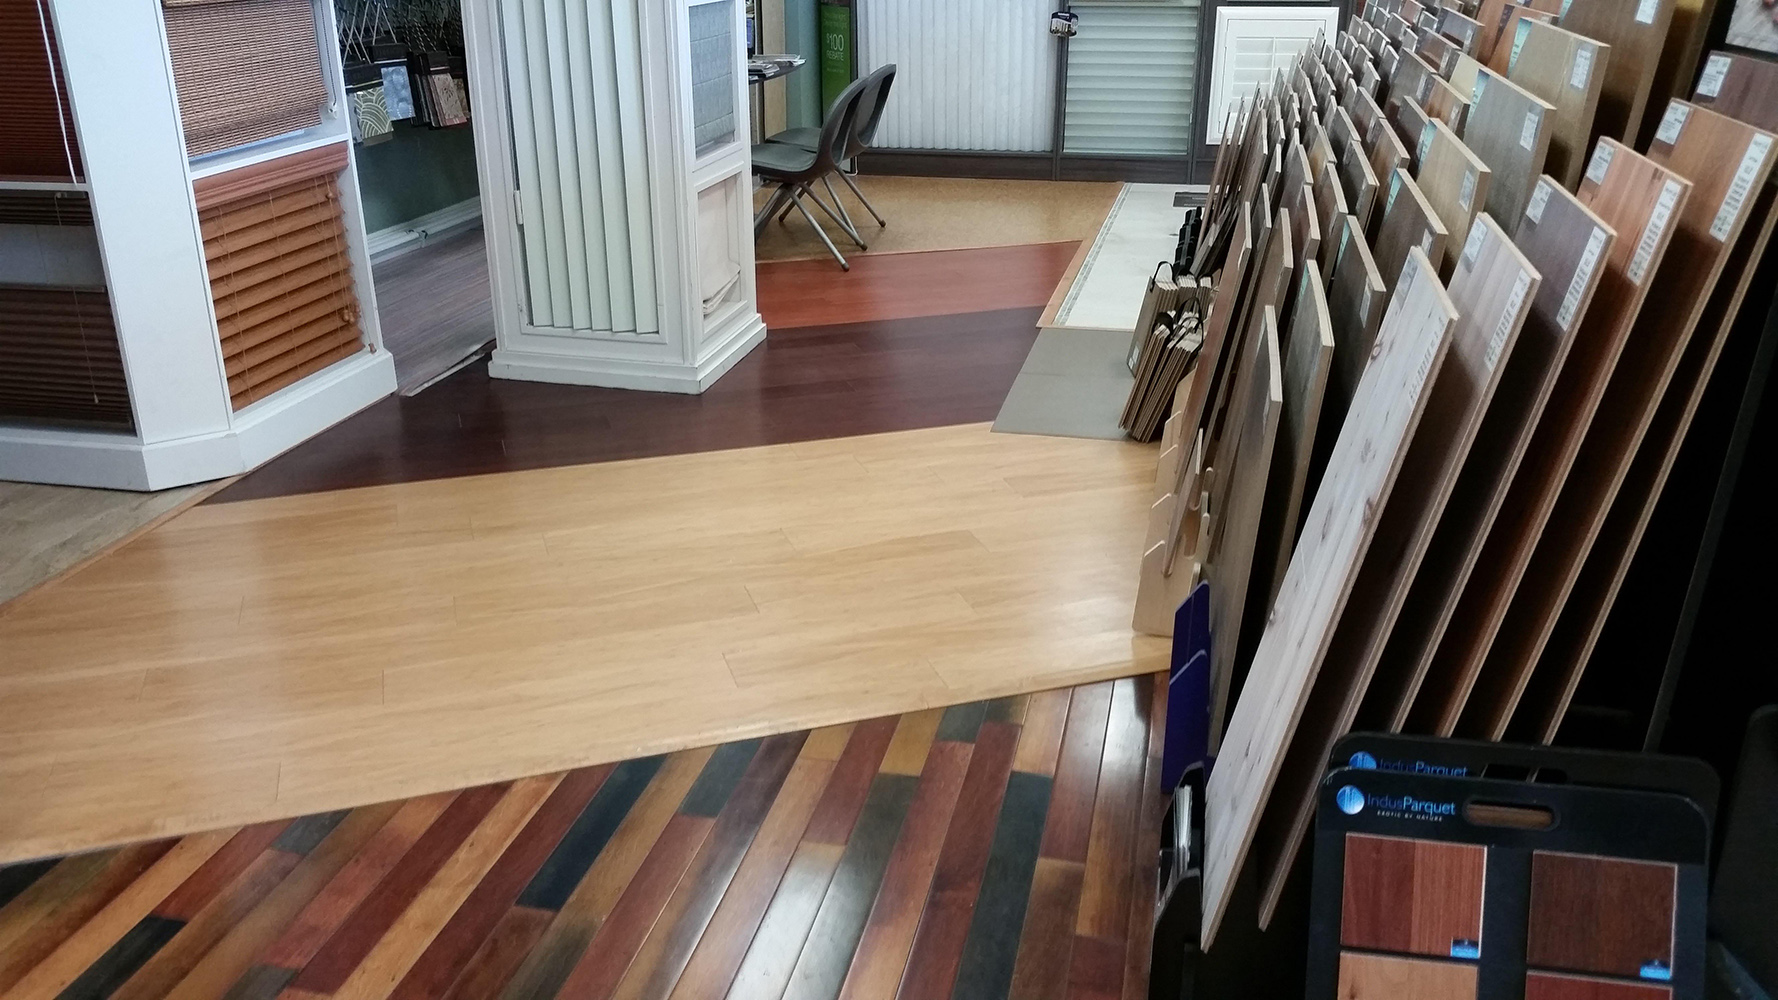 Residential and commercial flooring options